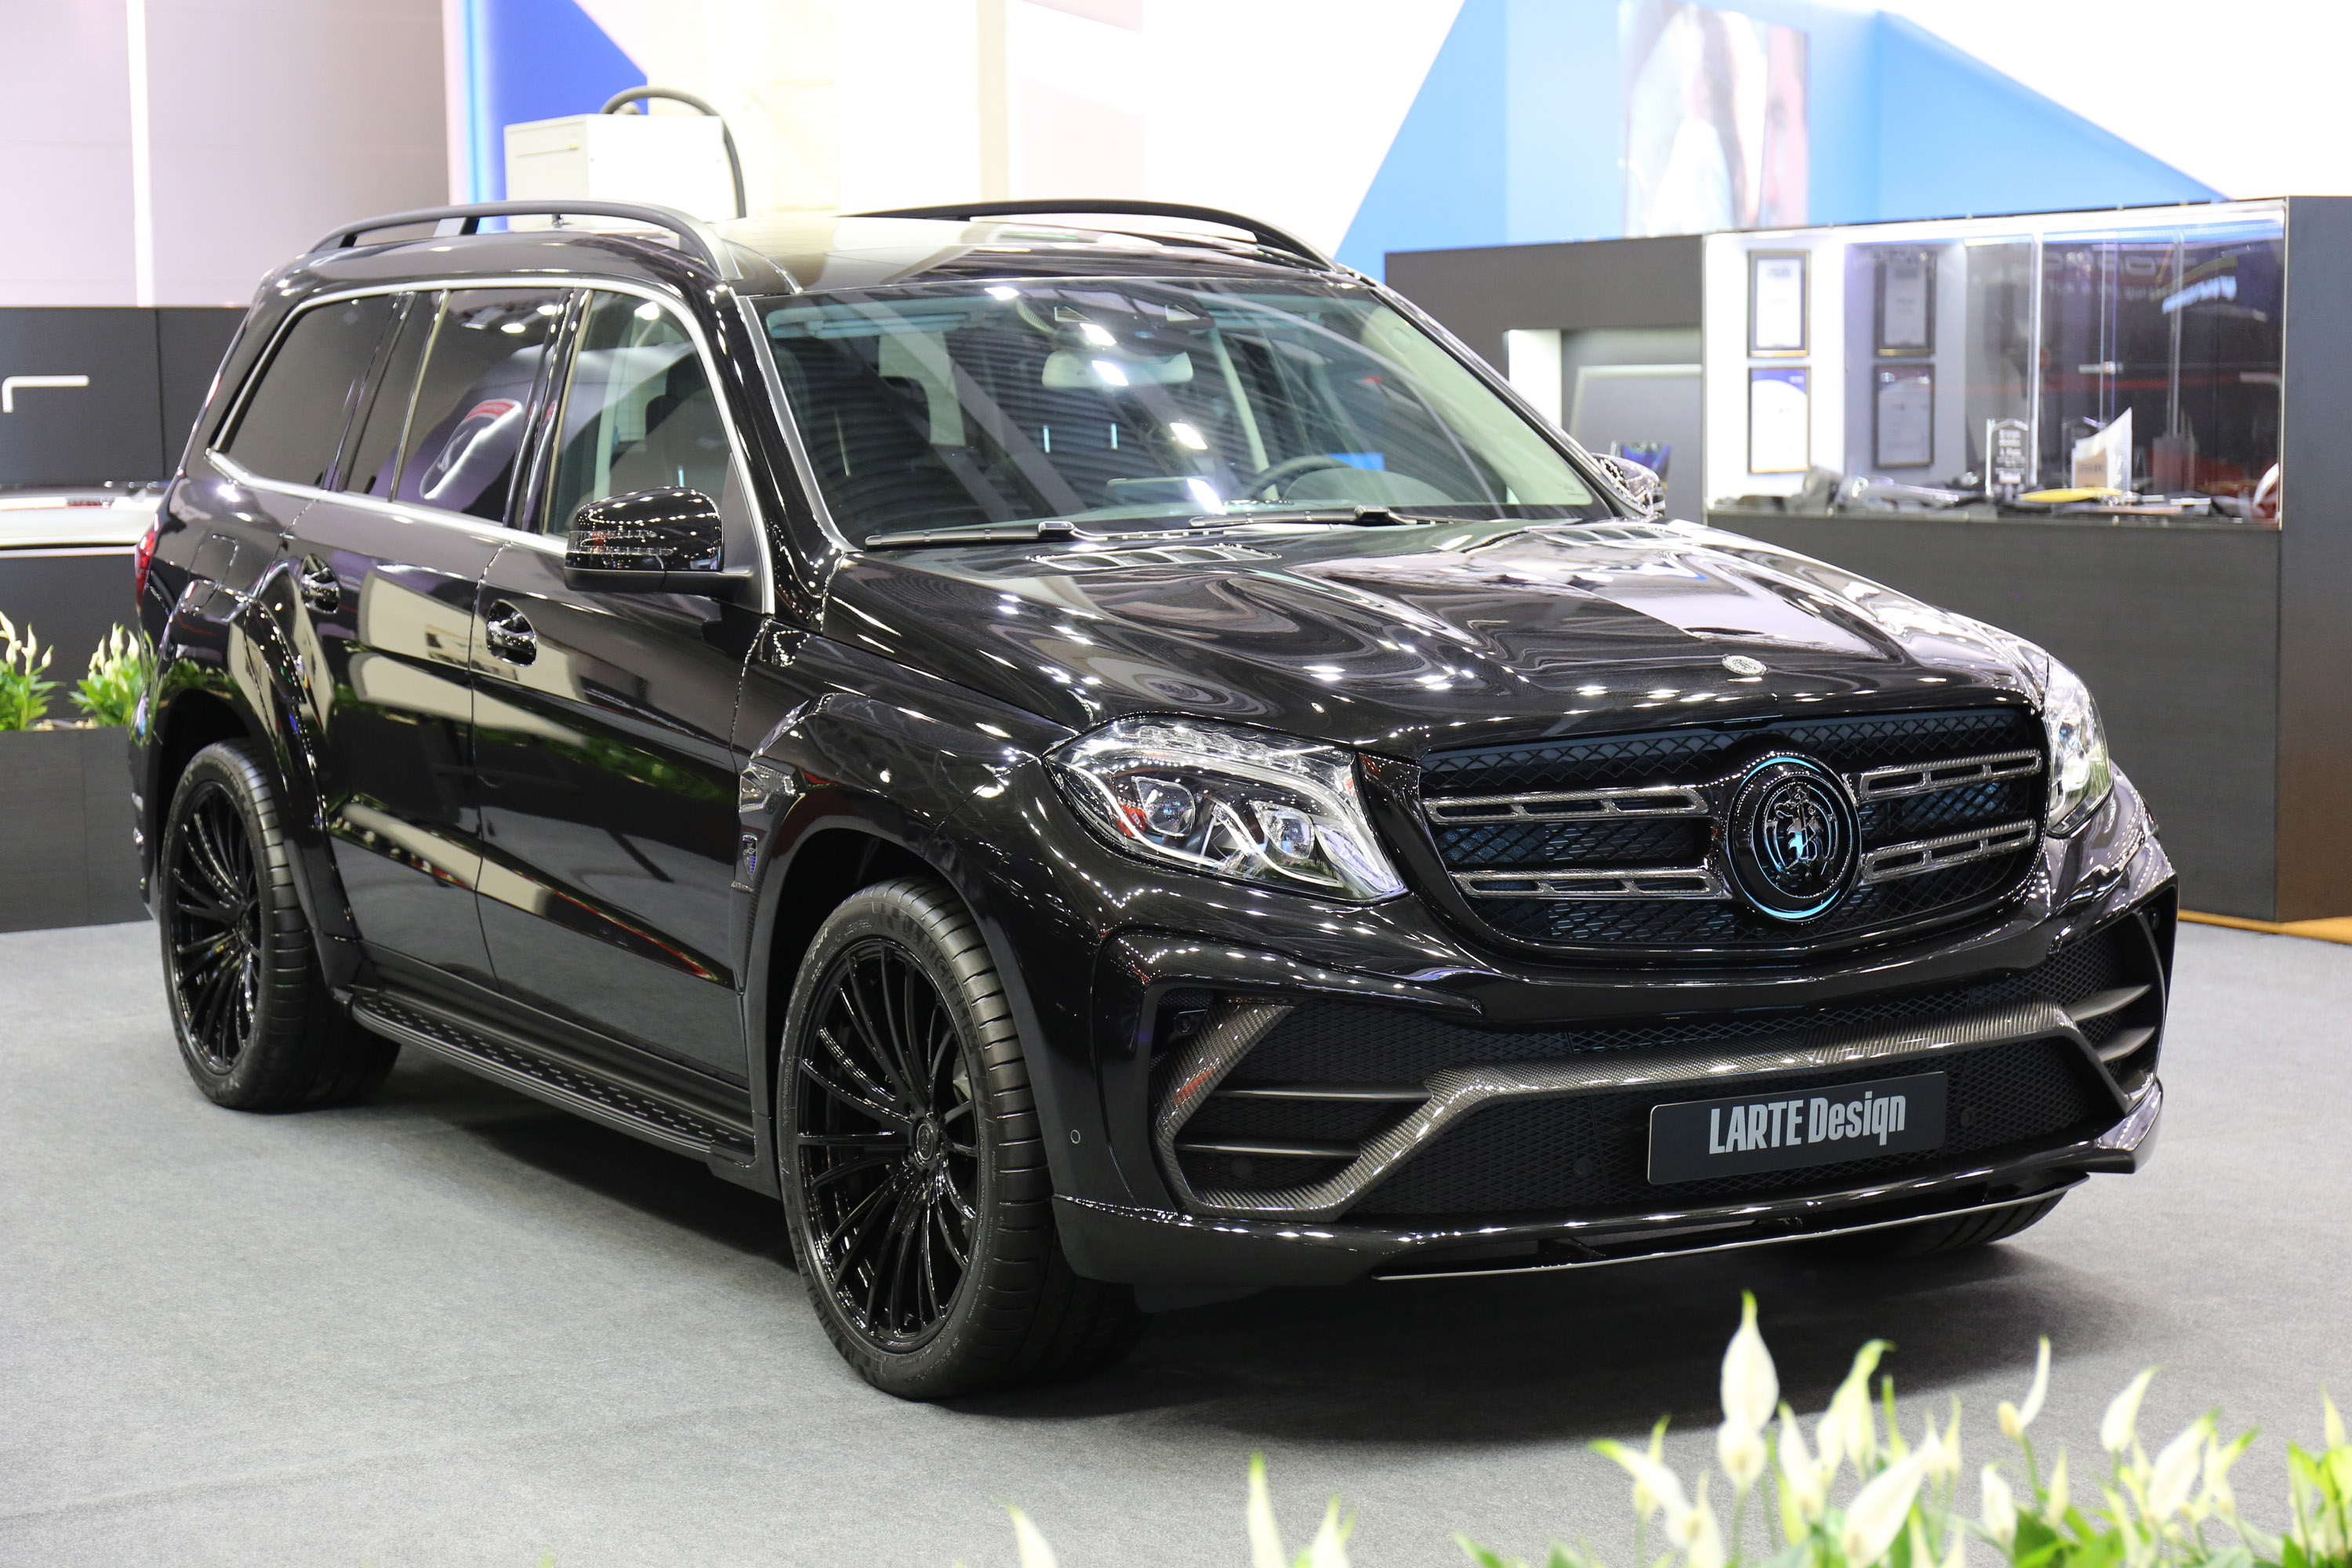 2016-larte-design-mercedes-benz-gls-black-crystal-02.jpg